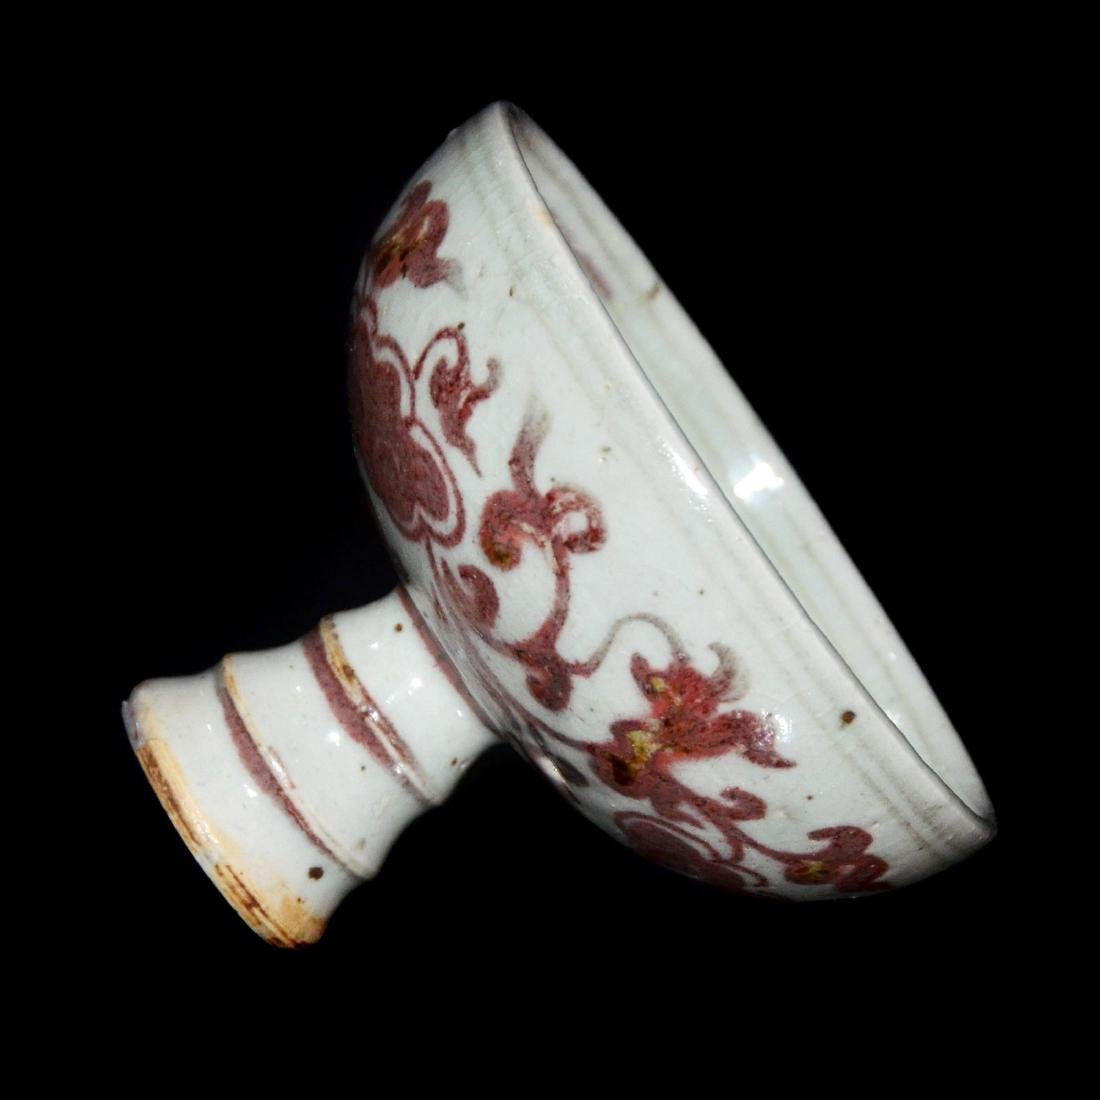 Yuan, A Rare Copper-Red Stem Cup with Floral Scrolls - 4